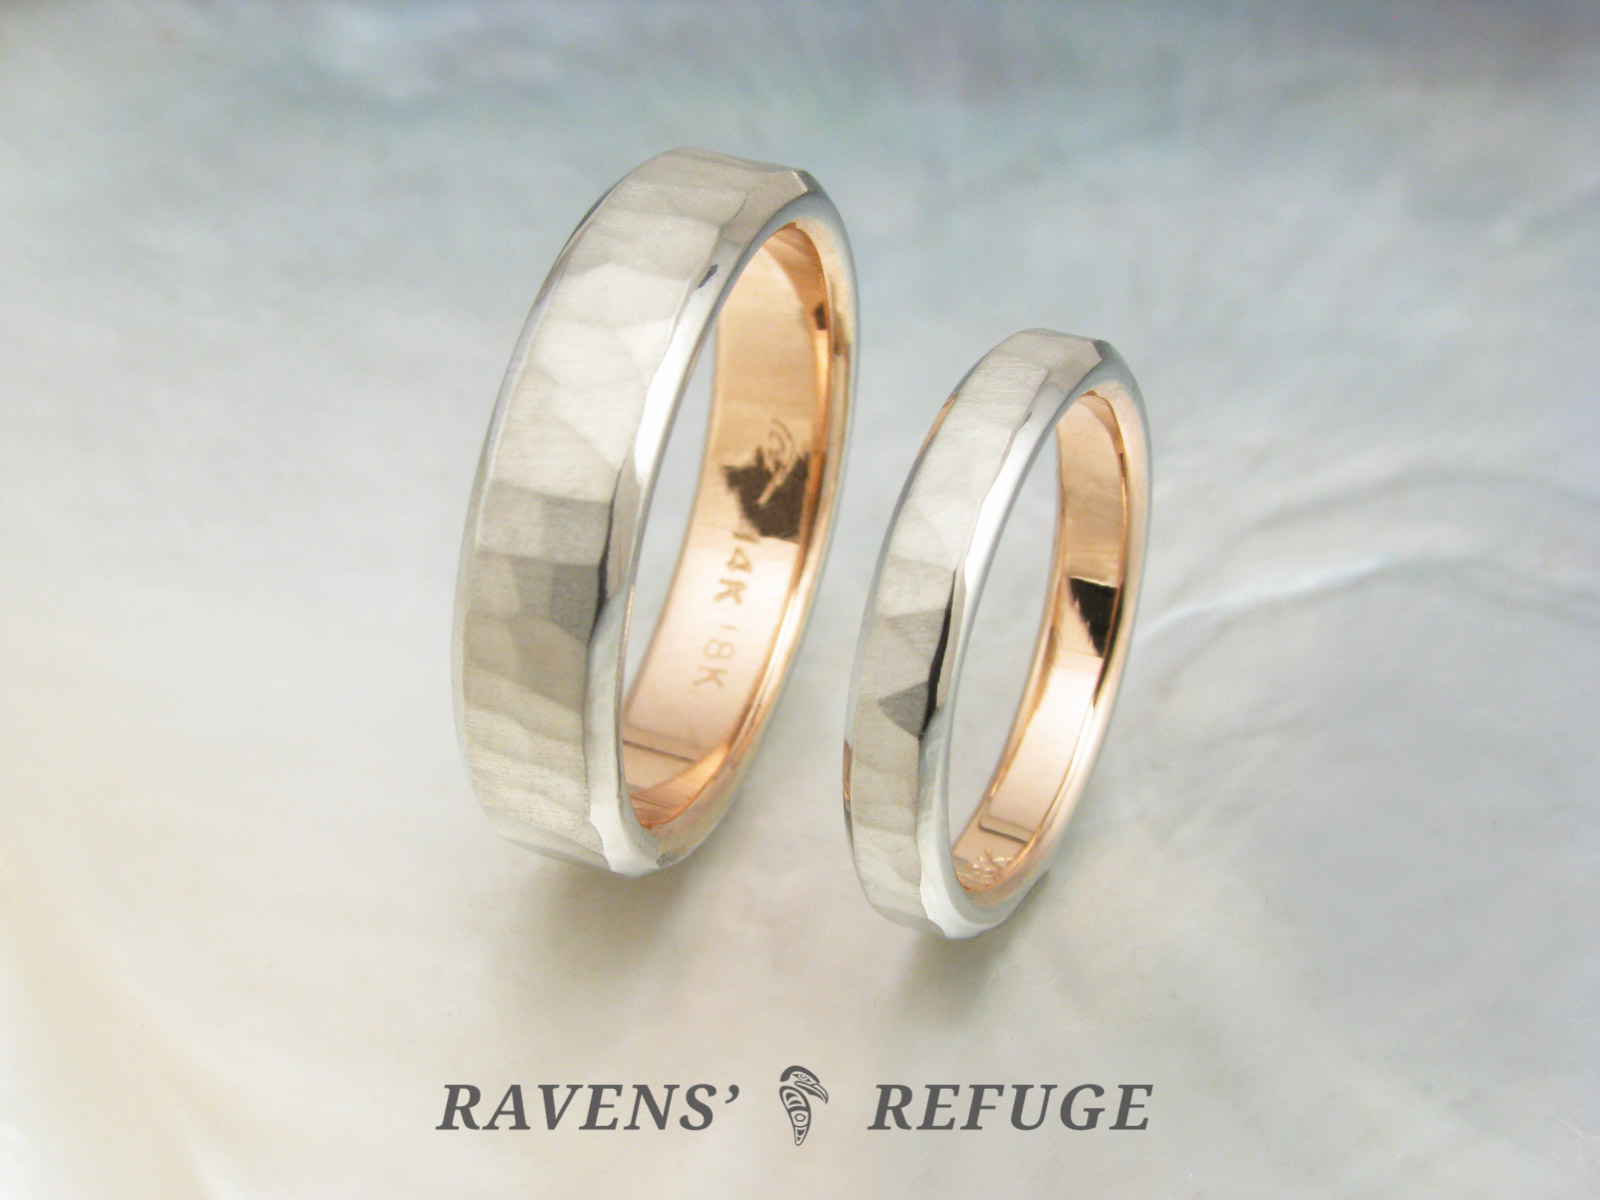 It is a photo of unique white gold wedding band set